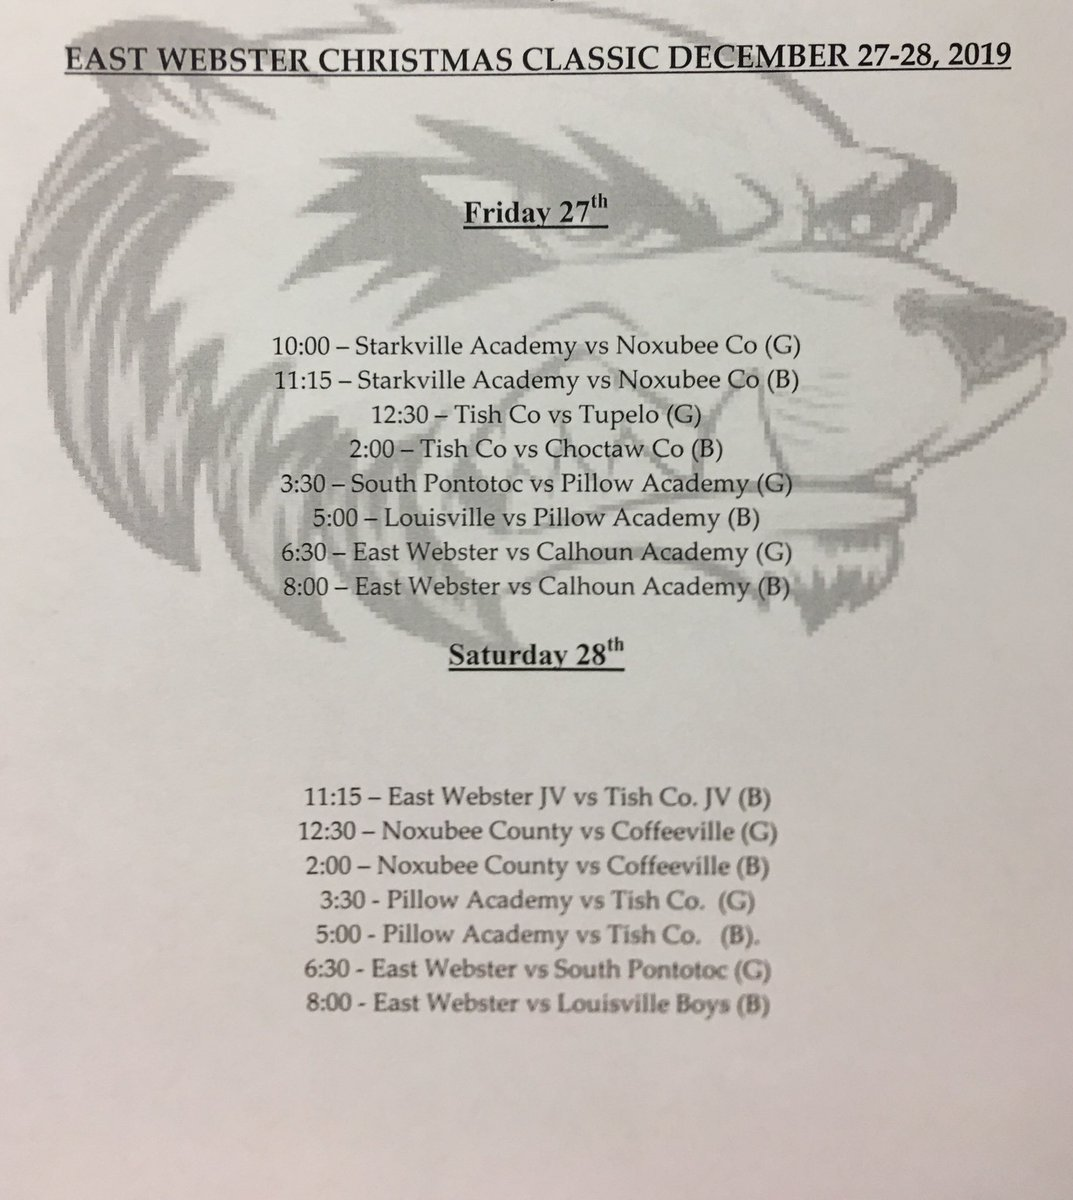 #LadyBravesBasketball will be back in action at the East Webster Christmas Classic. @AthleticsTCHS